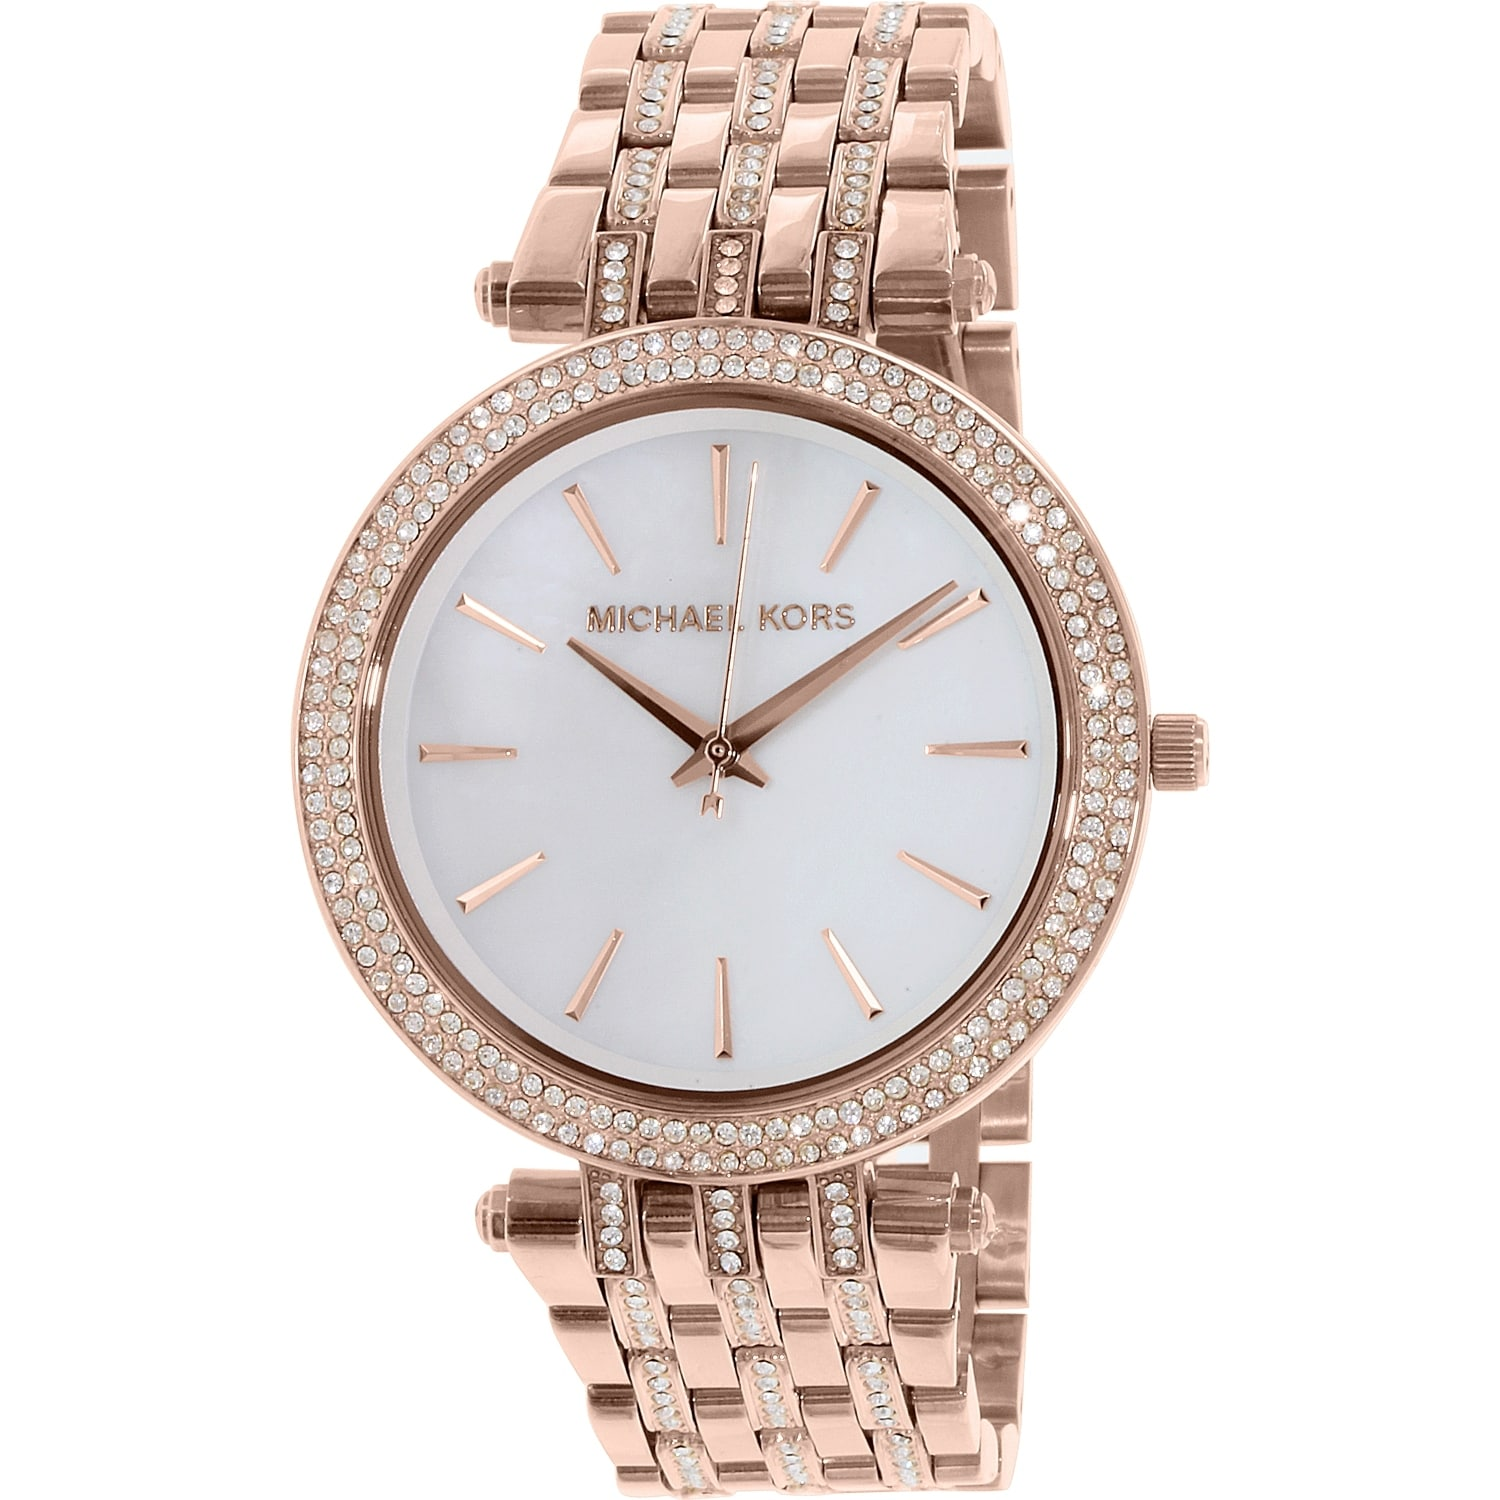 5fd740adb785 Shop Michael Kors Women s Darci Rose Gold Stainless Steel Plated Michael  Kors Women%27s Darci MK3220 Rose Gold Stainless Steel Plated Fashion Watch  ...